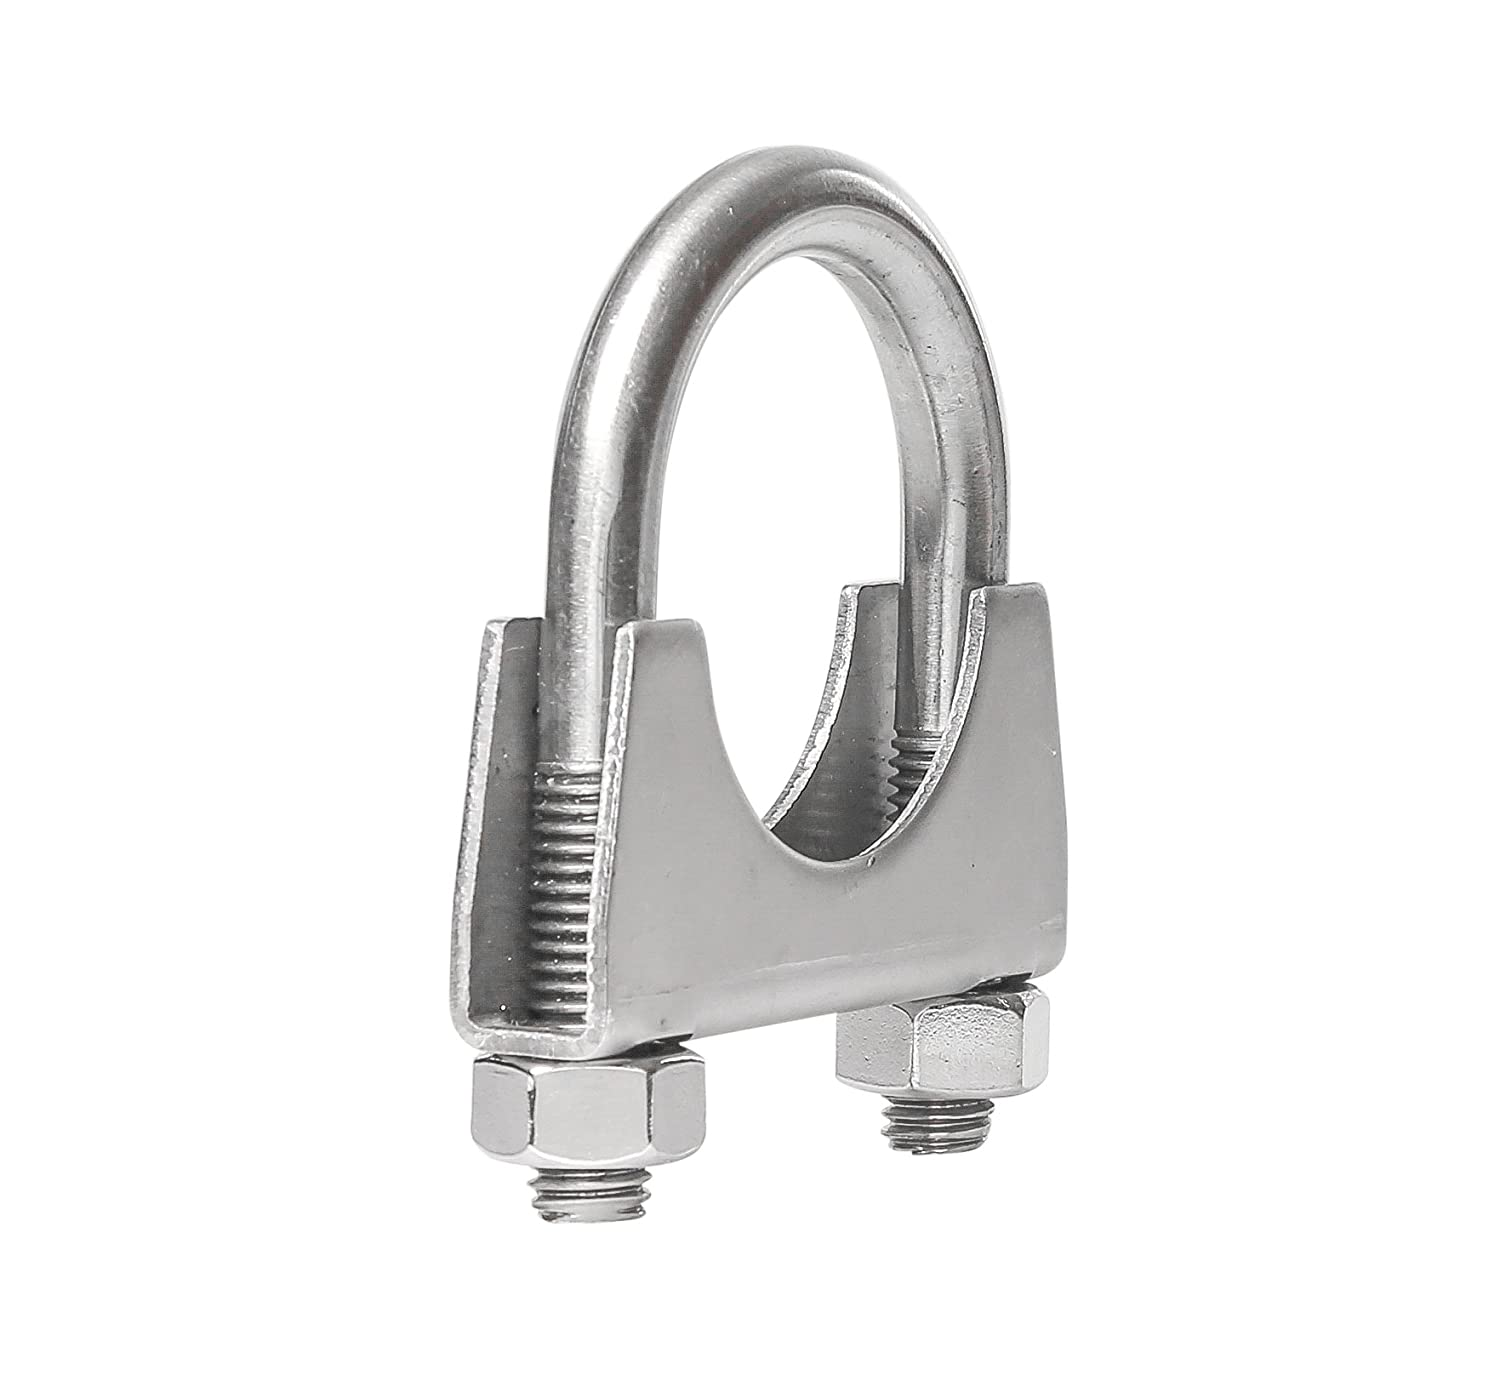 TOTALFLOW 3.5 TF-JB61 304 Stainless Steel Butt Joint Exhaust Muffler Clamp Band-3.5 Inch